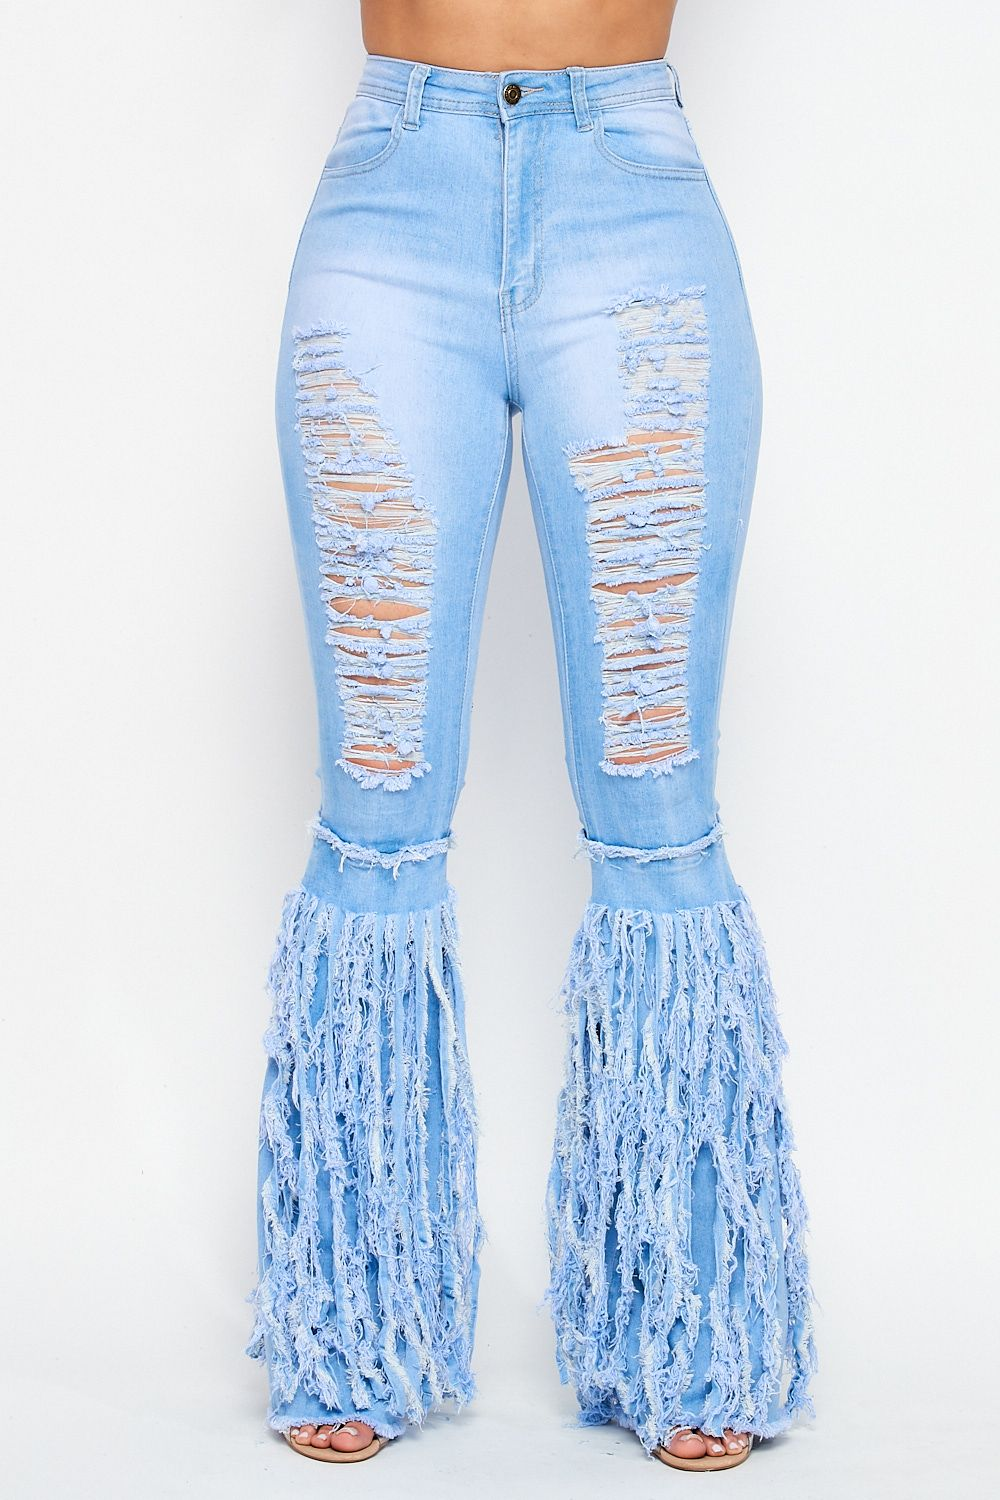 High Waist Fully Distressed Bottom Fringe Detail Jeans in Light Denim - Fashion House USA